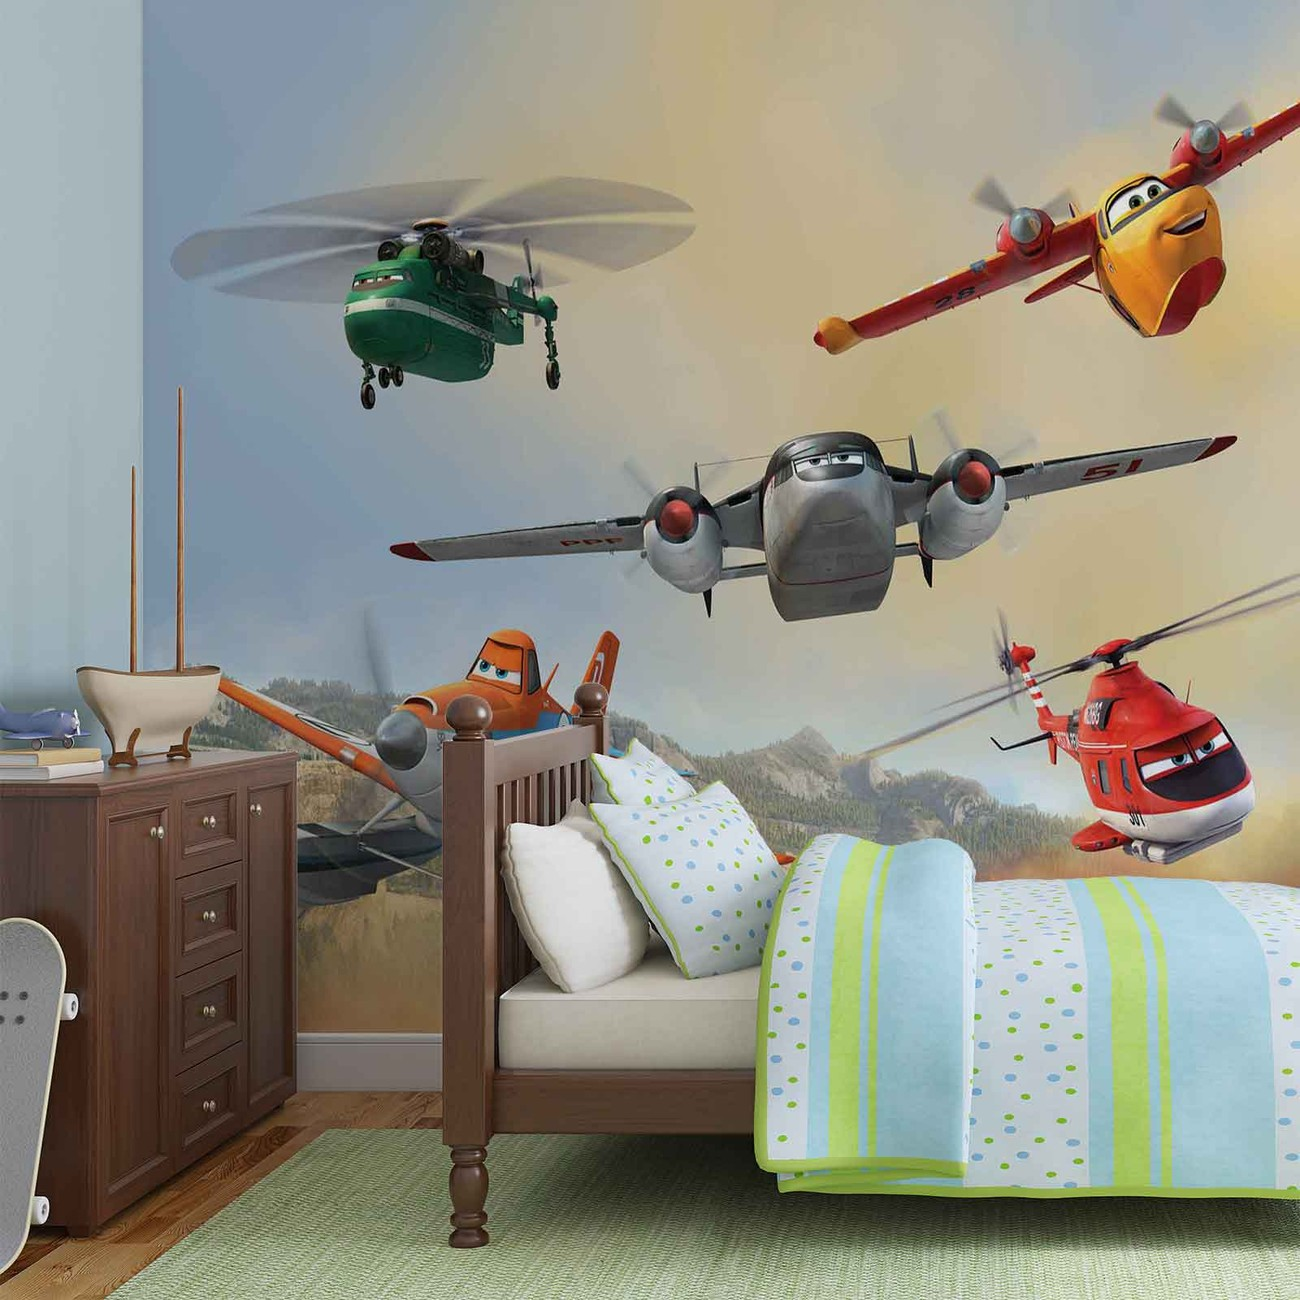 Disney planes dusty blade dipper cabbie wall paper mural for Disney wall mural uk